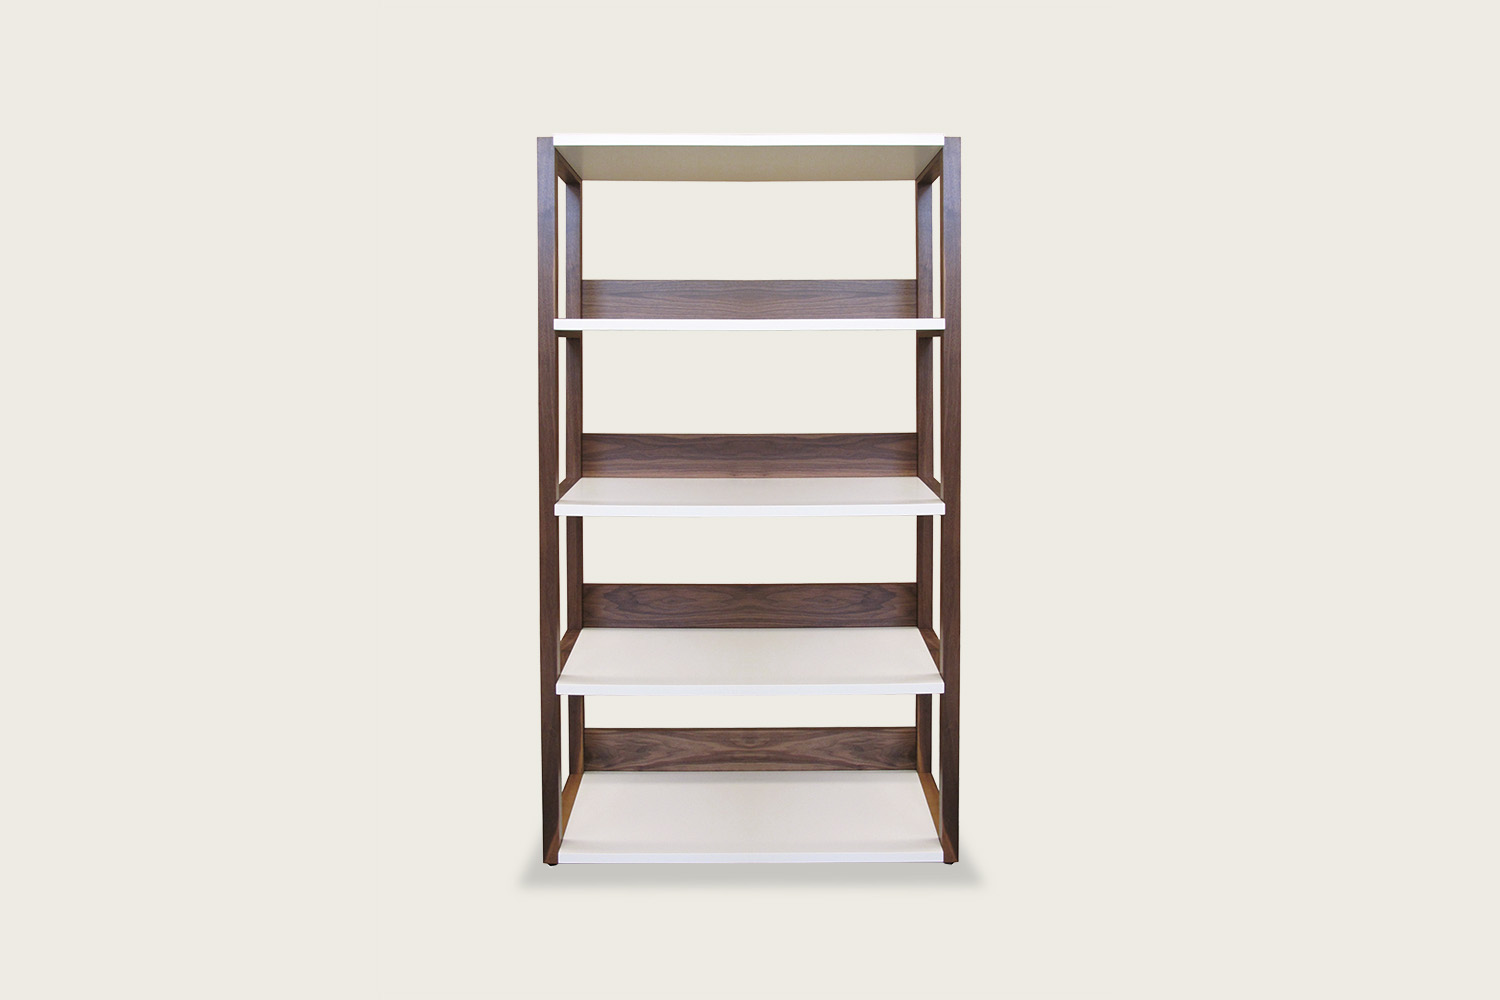 Strata Shelving Unit - 5-tier in walnut with white shelves - Speke Klein